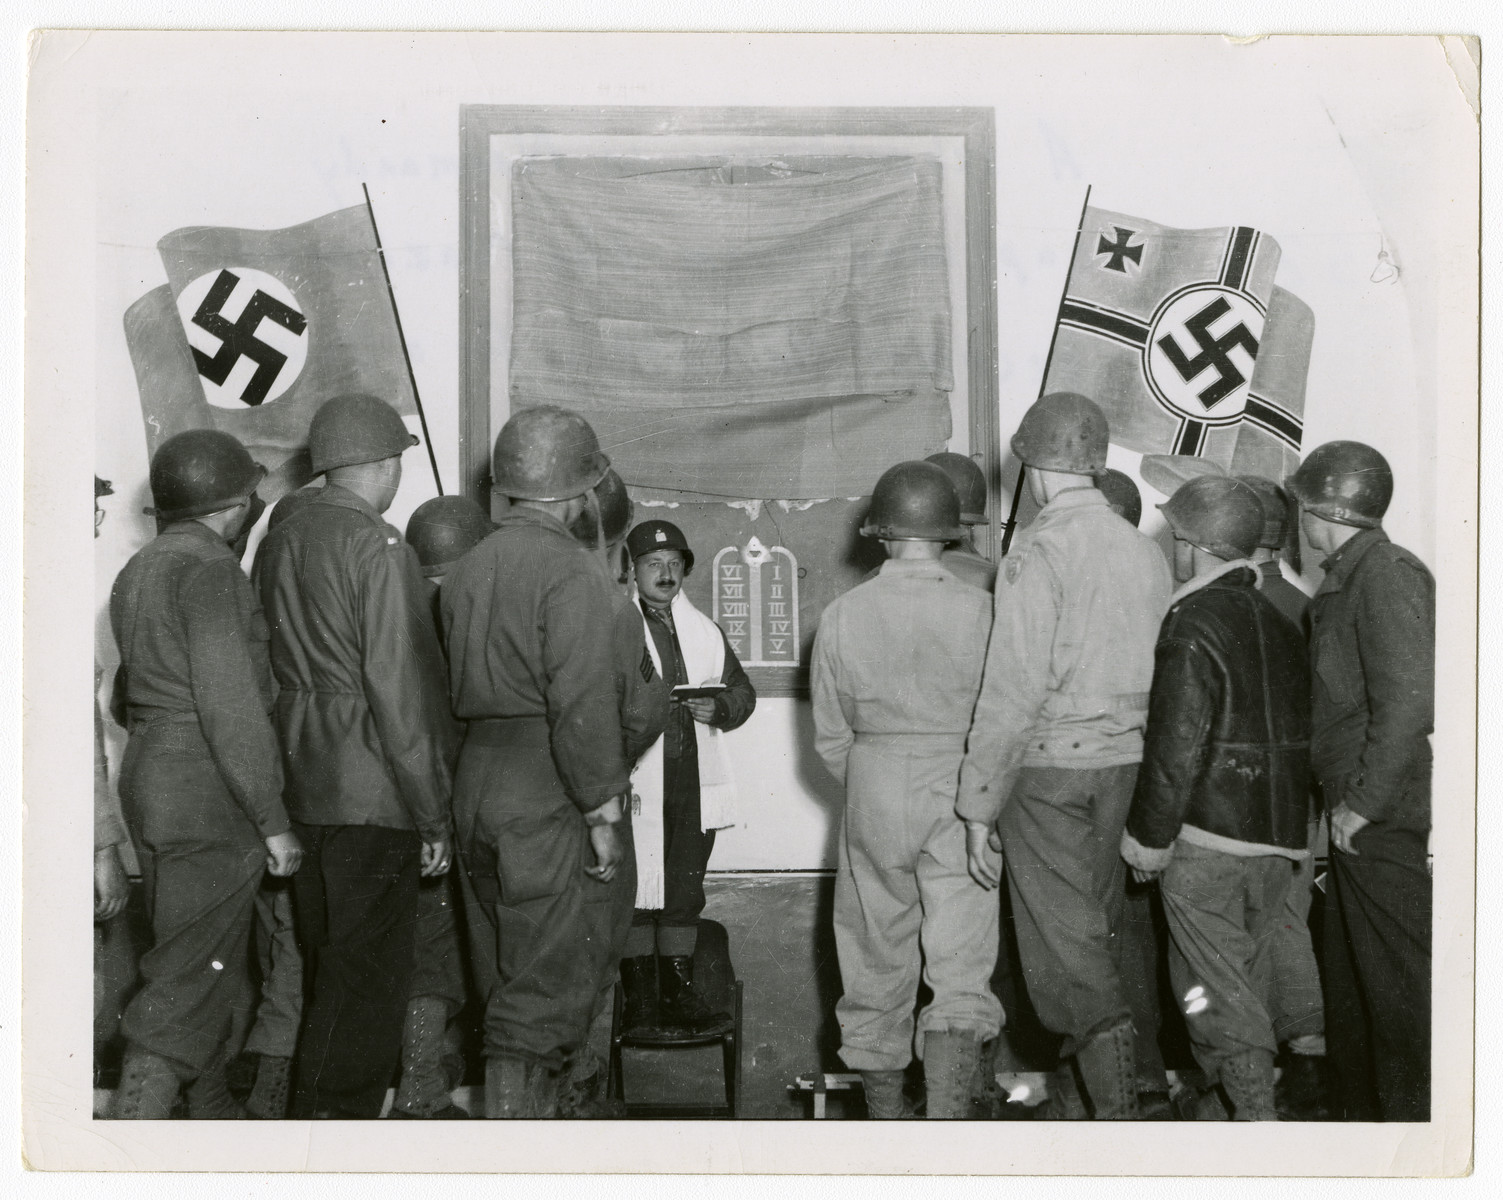 """Jewish soldiers gather for a prayer service in a room still bedecked with Nazi flags.  Original caption reads, """"A schoolhouse in Normandy captured from the Nazi army becomes the setting for a Jewish Service."""""""